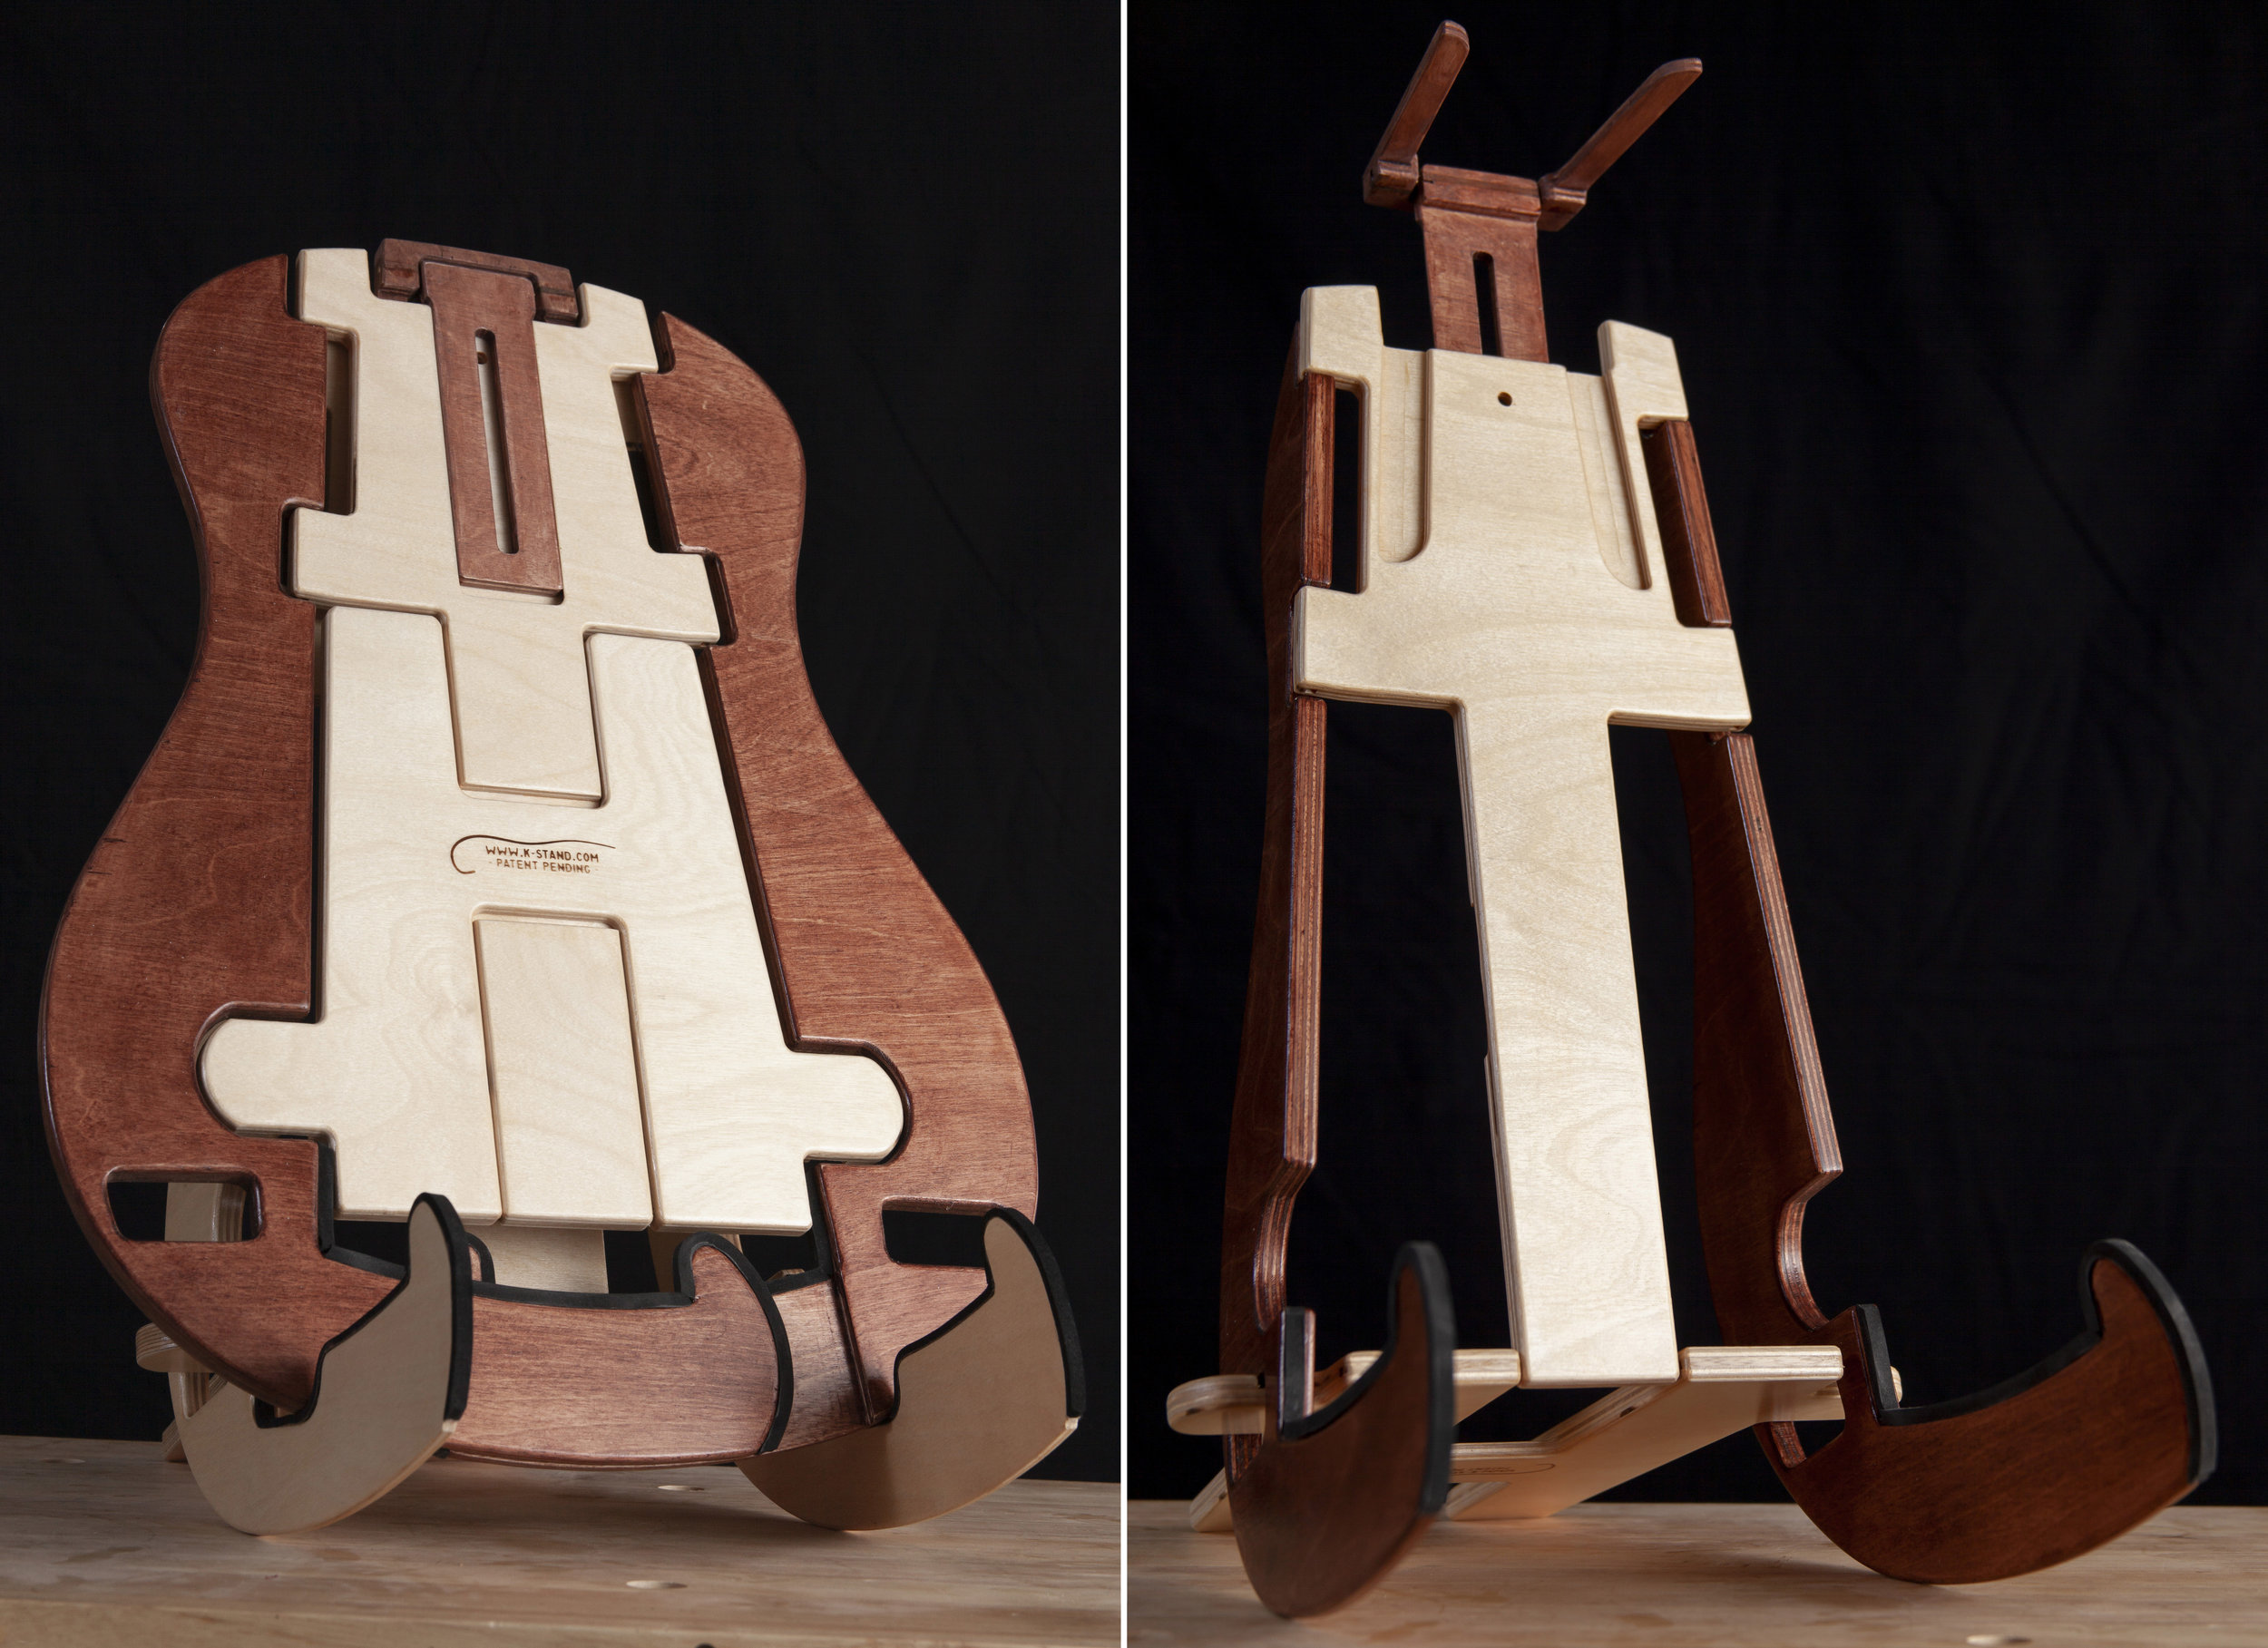 The K-Stand's patented design allows it to lay flat for storage inside your instrument case along with your instrument then instantly transform to become a sturdy instrument stand for your Guitar, Ukulele or other similar instrument. Every K-Stand is hand-made hardwood and is available in a variety of finish colors.